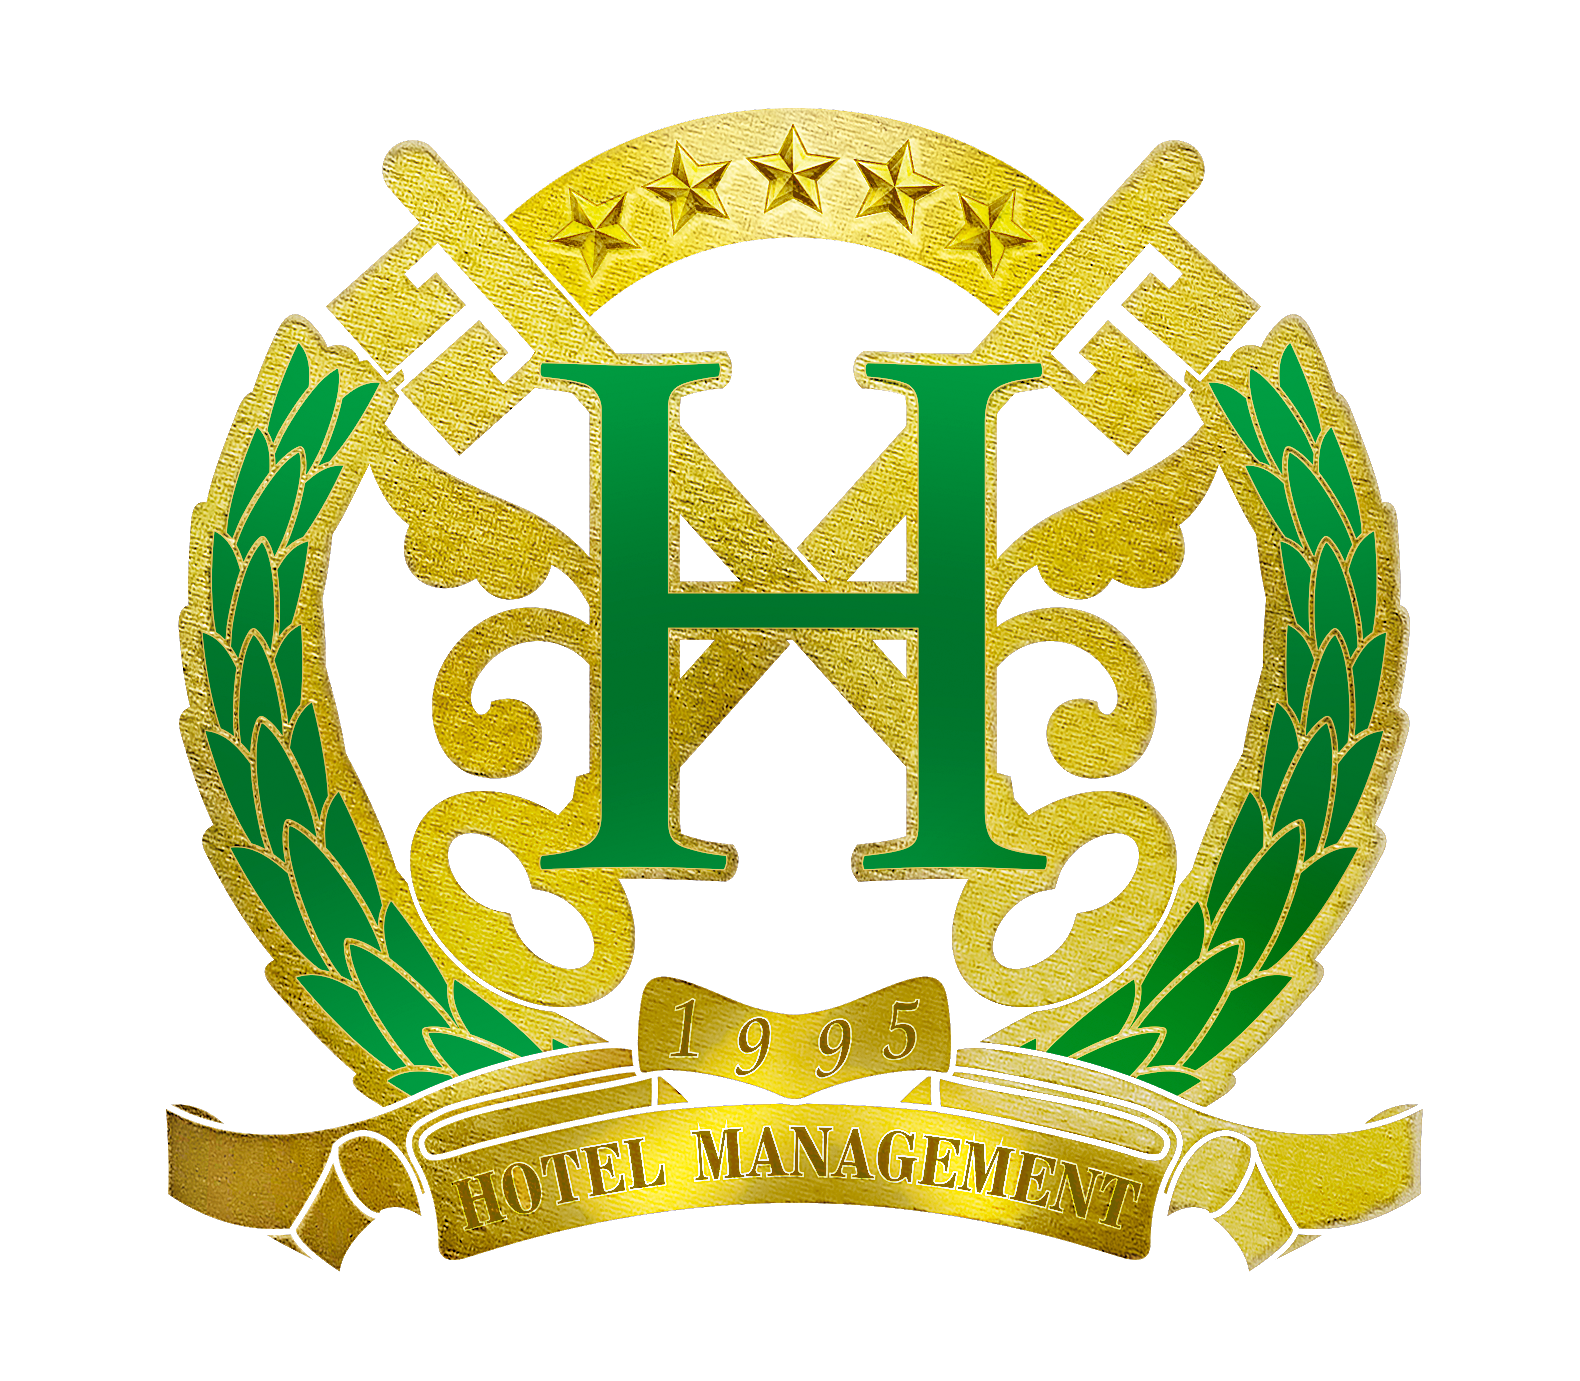 Department of hotel management